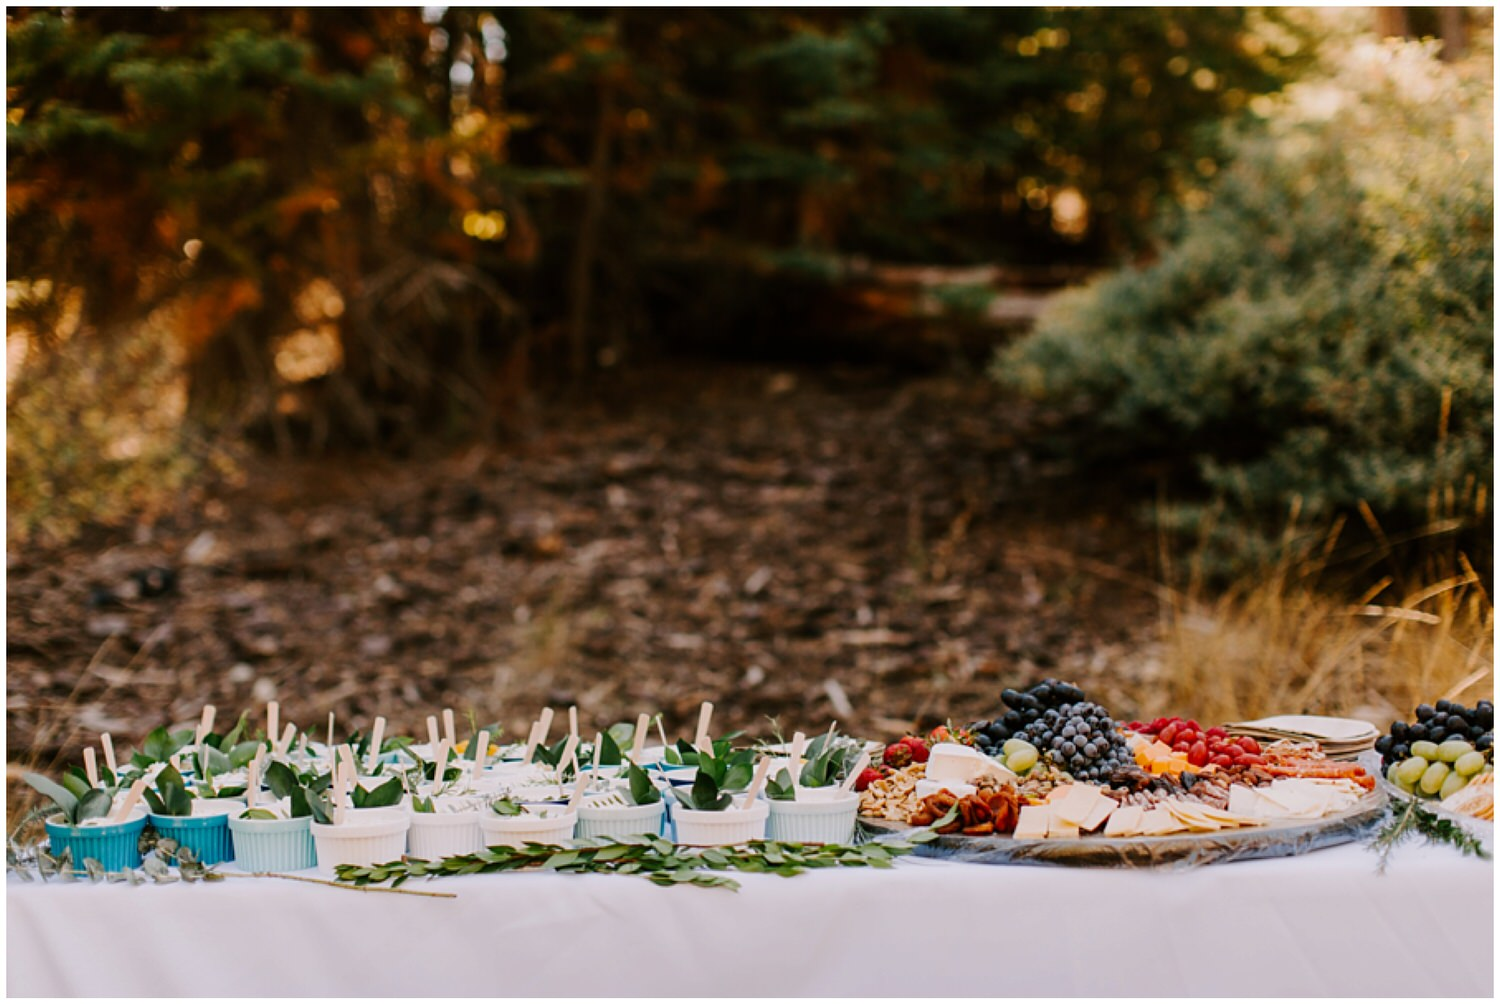 charcuterie board at intimate forest wedding